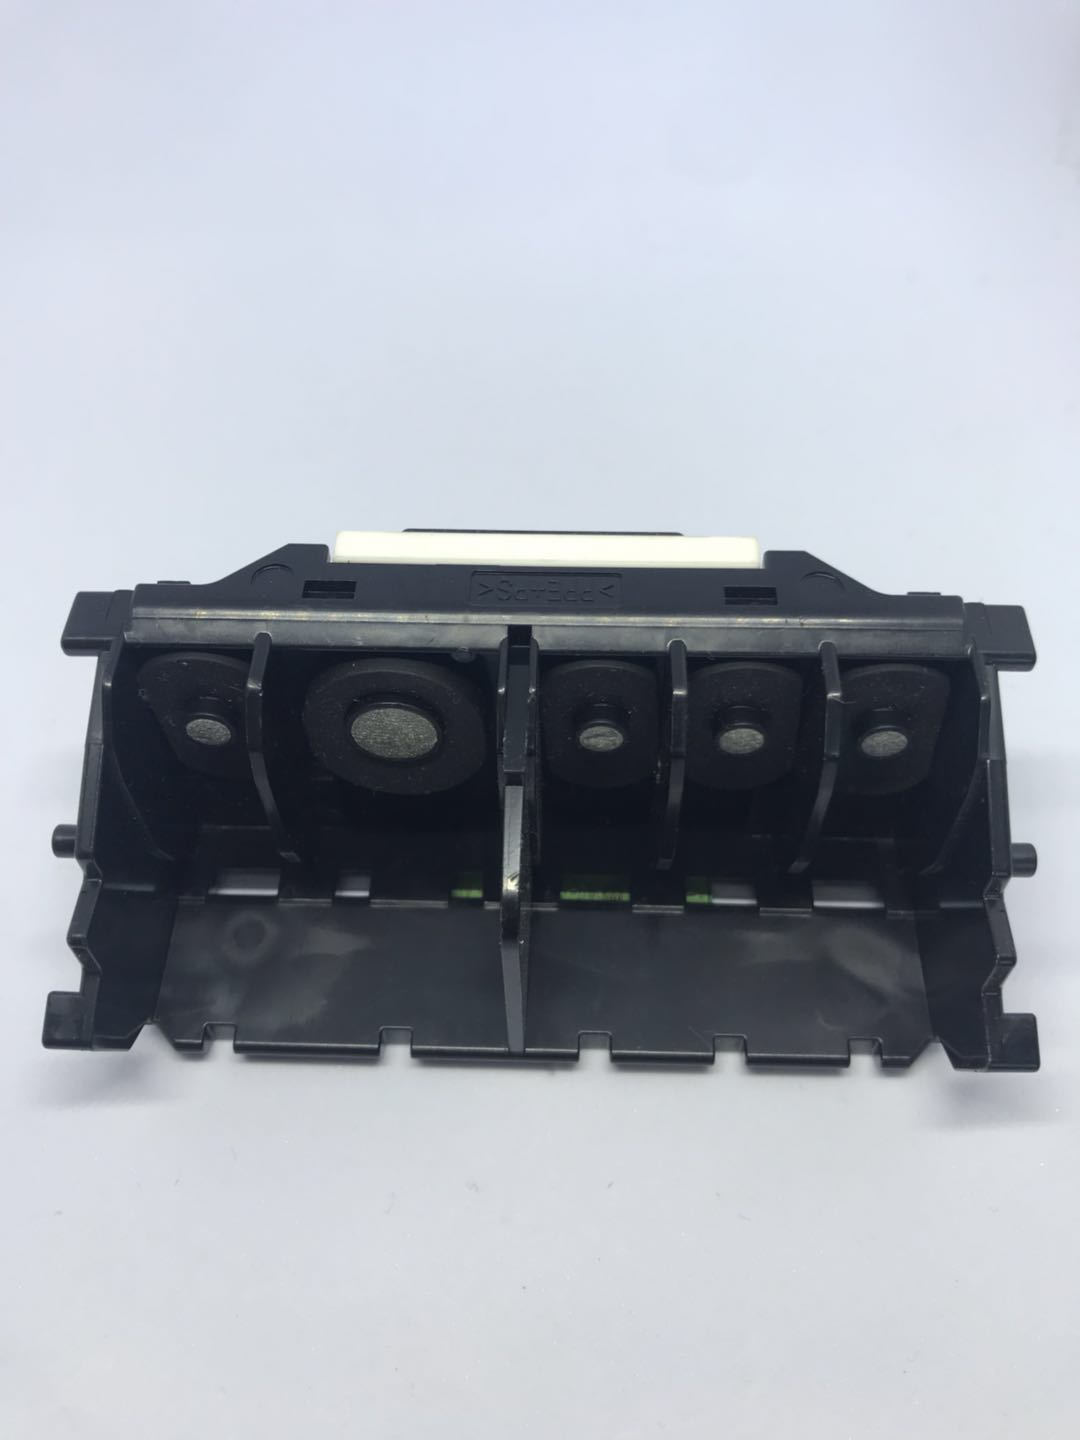 QY6-0082 Printhead Printer Print Head For Canon Pxima Ip 7220 7250 MG 5420 5440 5450 5460 5520 5550 6420 6450 ip7250 mg6600 image